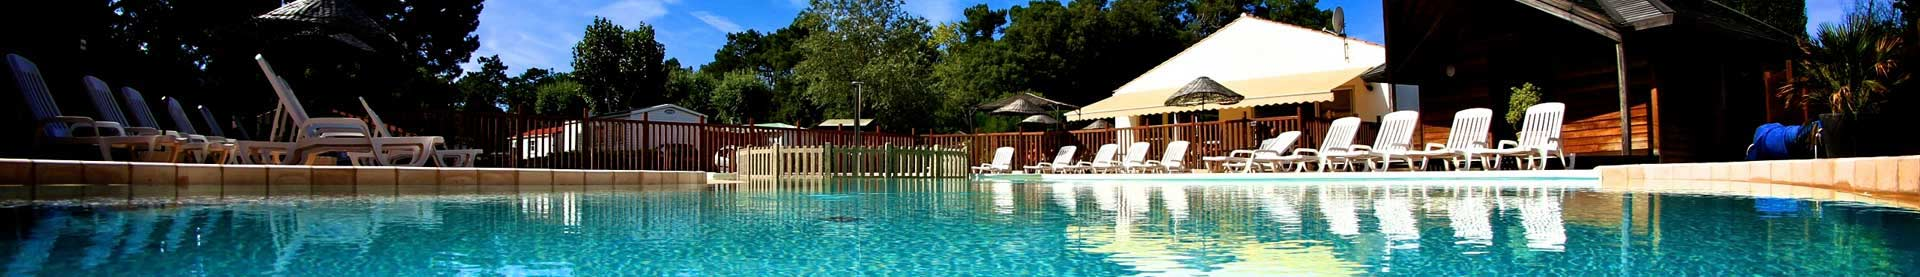 Camping Fromentine avec piscine chauffée